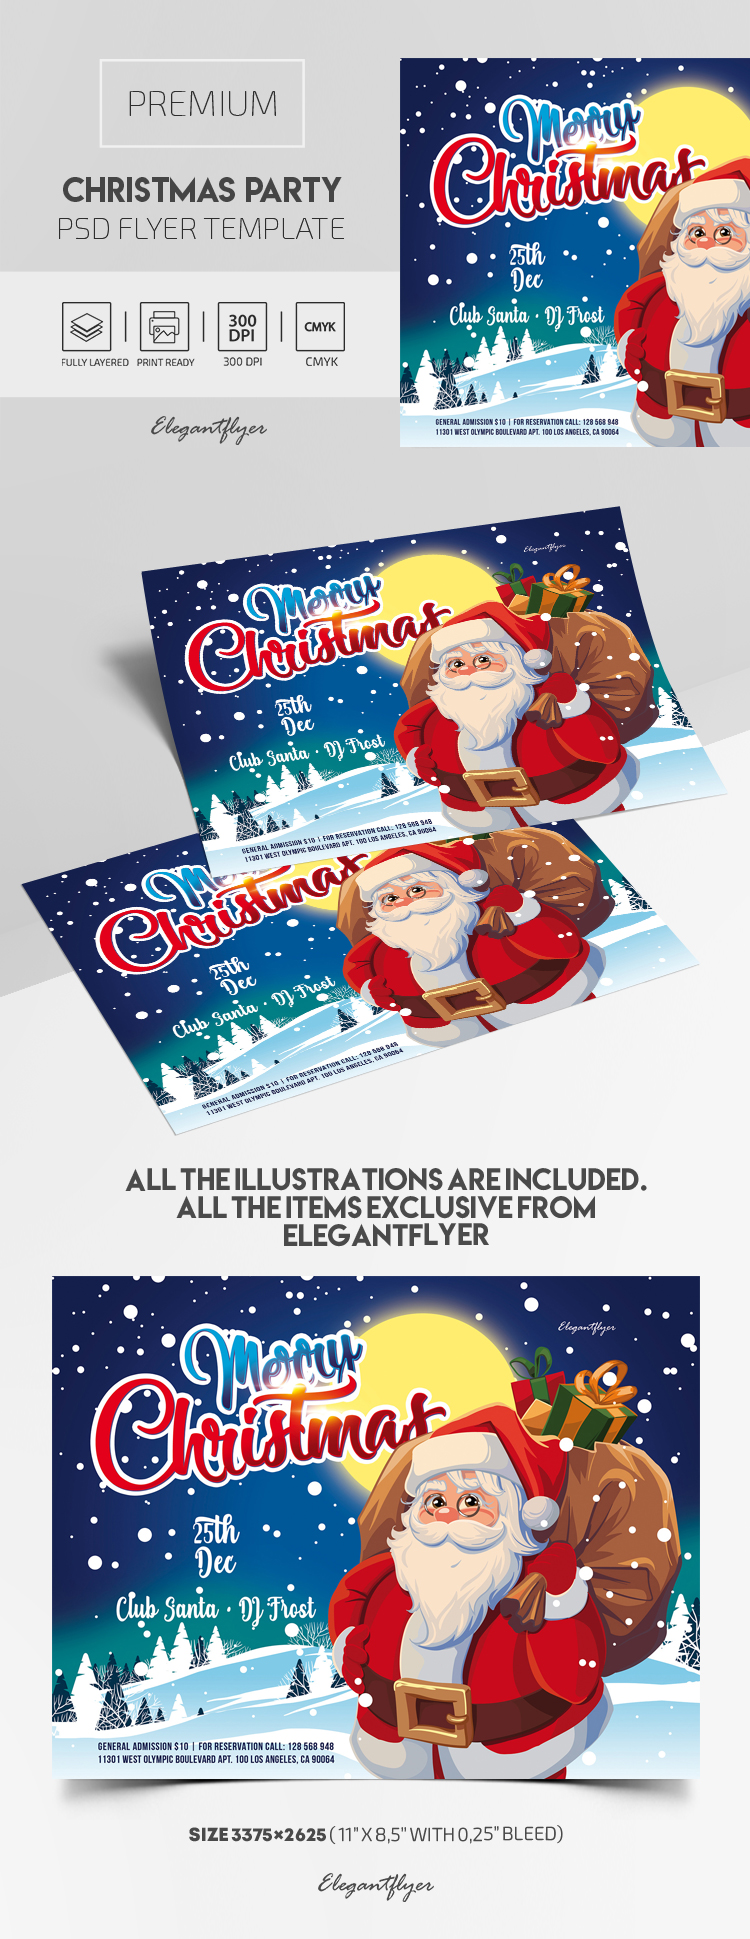 Christmas Party – Premium PSD Flyer Template